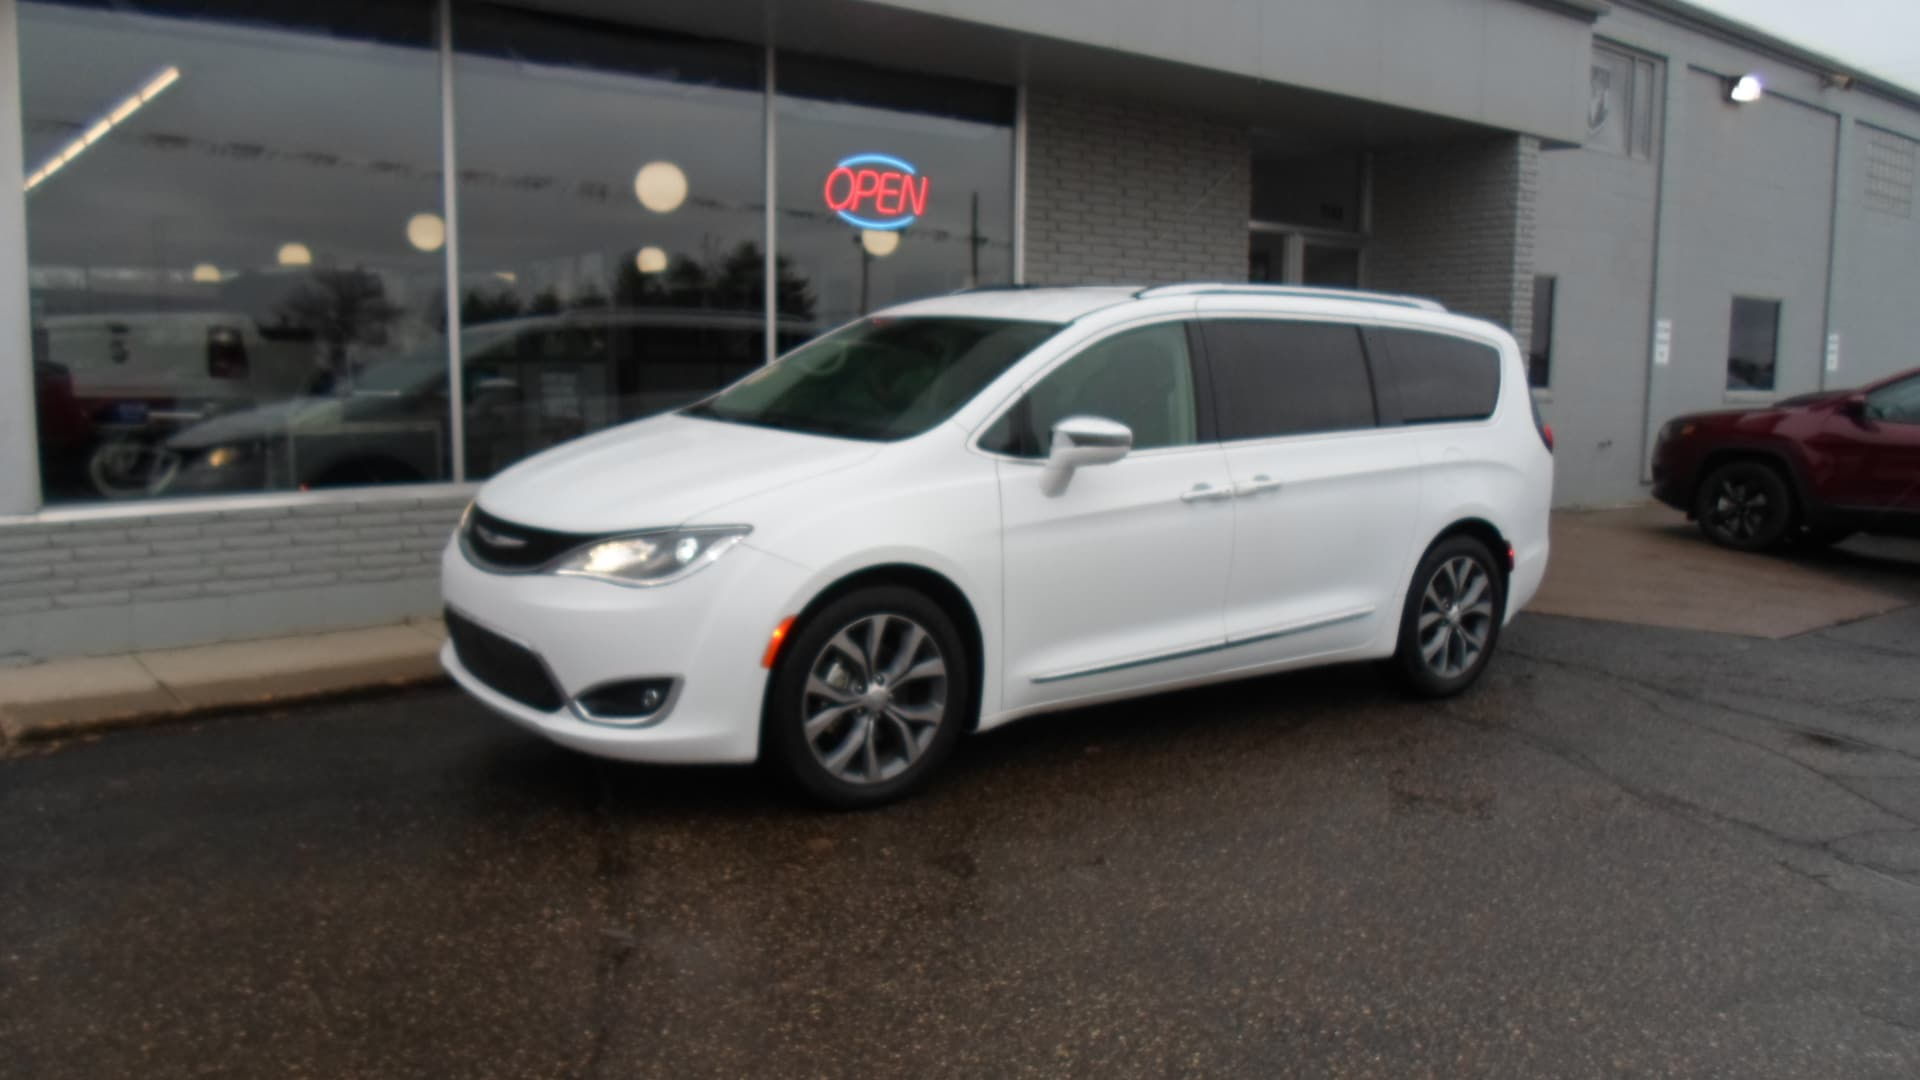 USed 2018 Chrysler Pacifica for sale in Devils Lake